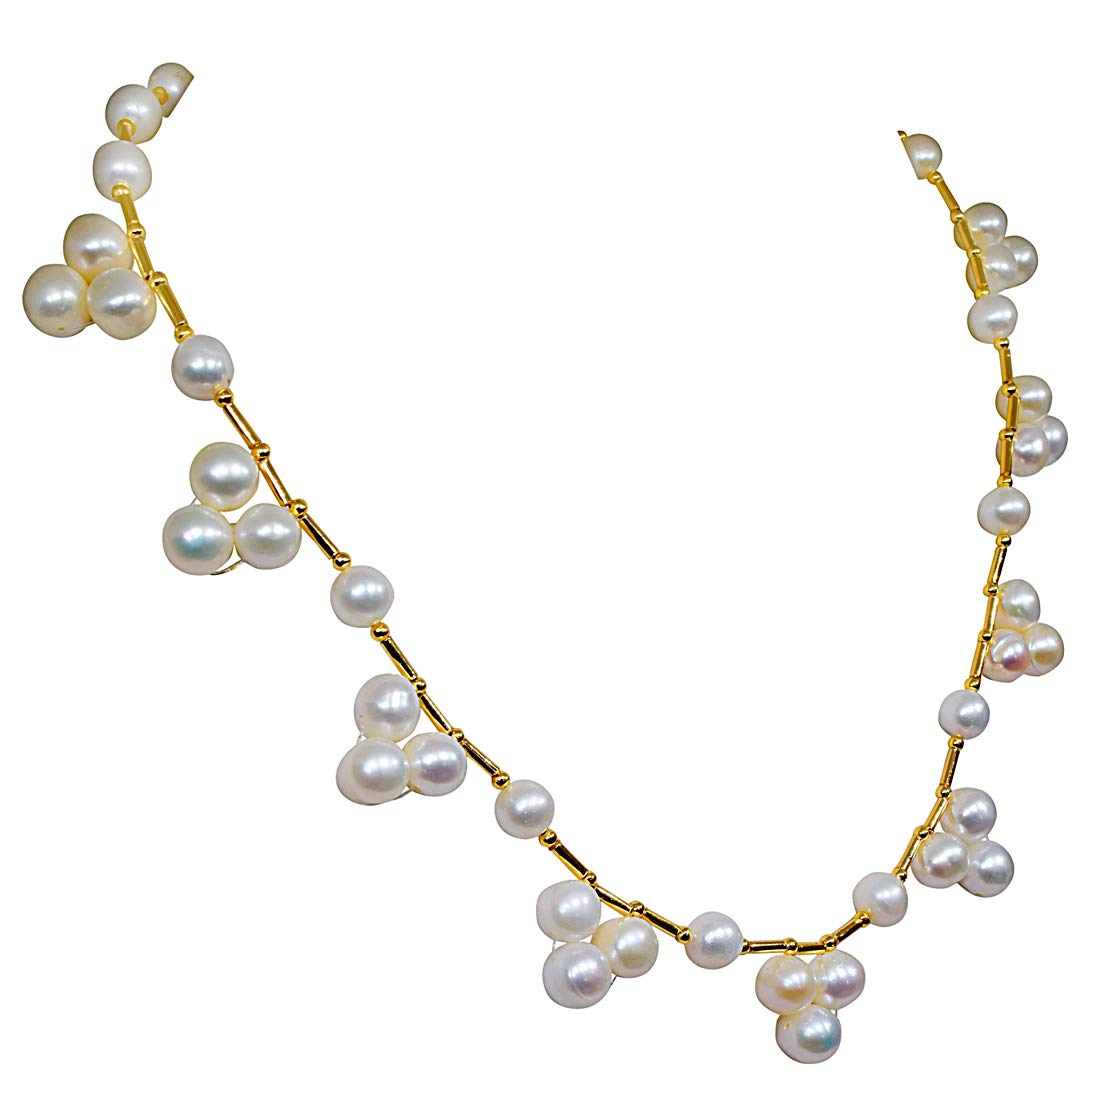 Angelic Beauty - Single Line Flower Design Real Freshwater Pearl Necklace for Women (SN143)